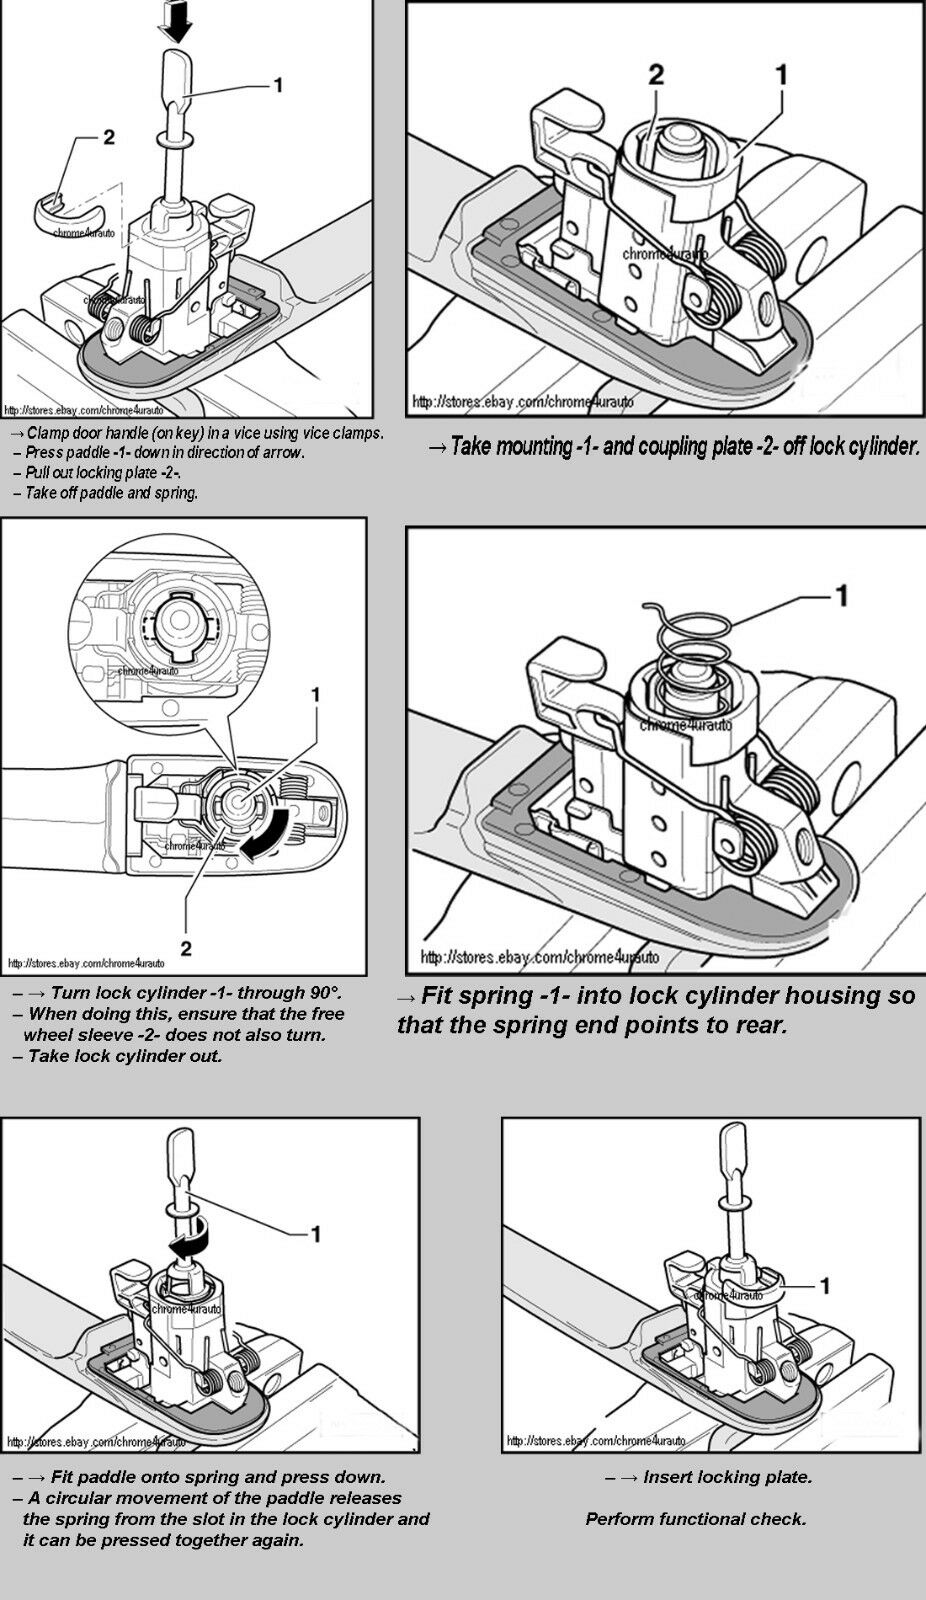 Volkswagen Vw Beetle Door Lock Cylinder Barrel Repair Kit Left Right 1998 Engine Diagram Brand New Highest Durable Quality Available Fast Shipping From Usa